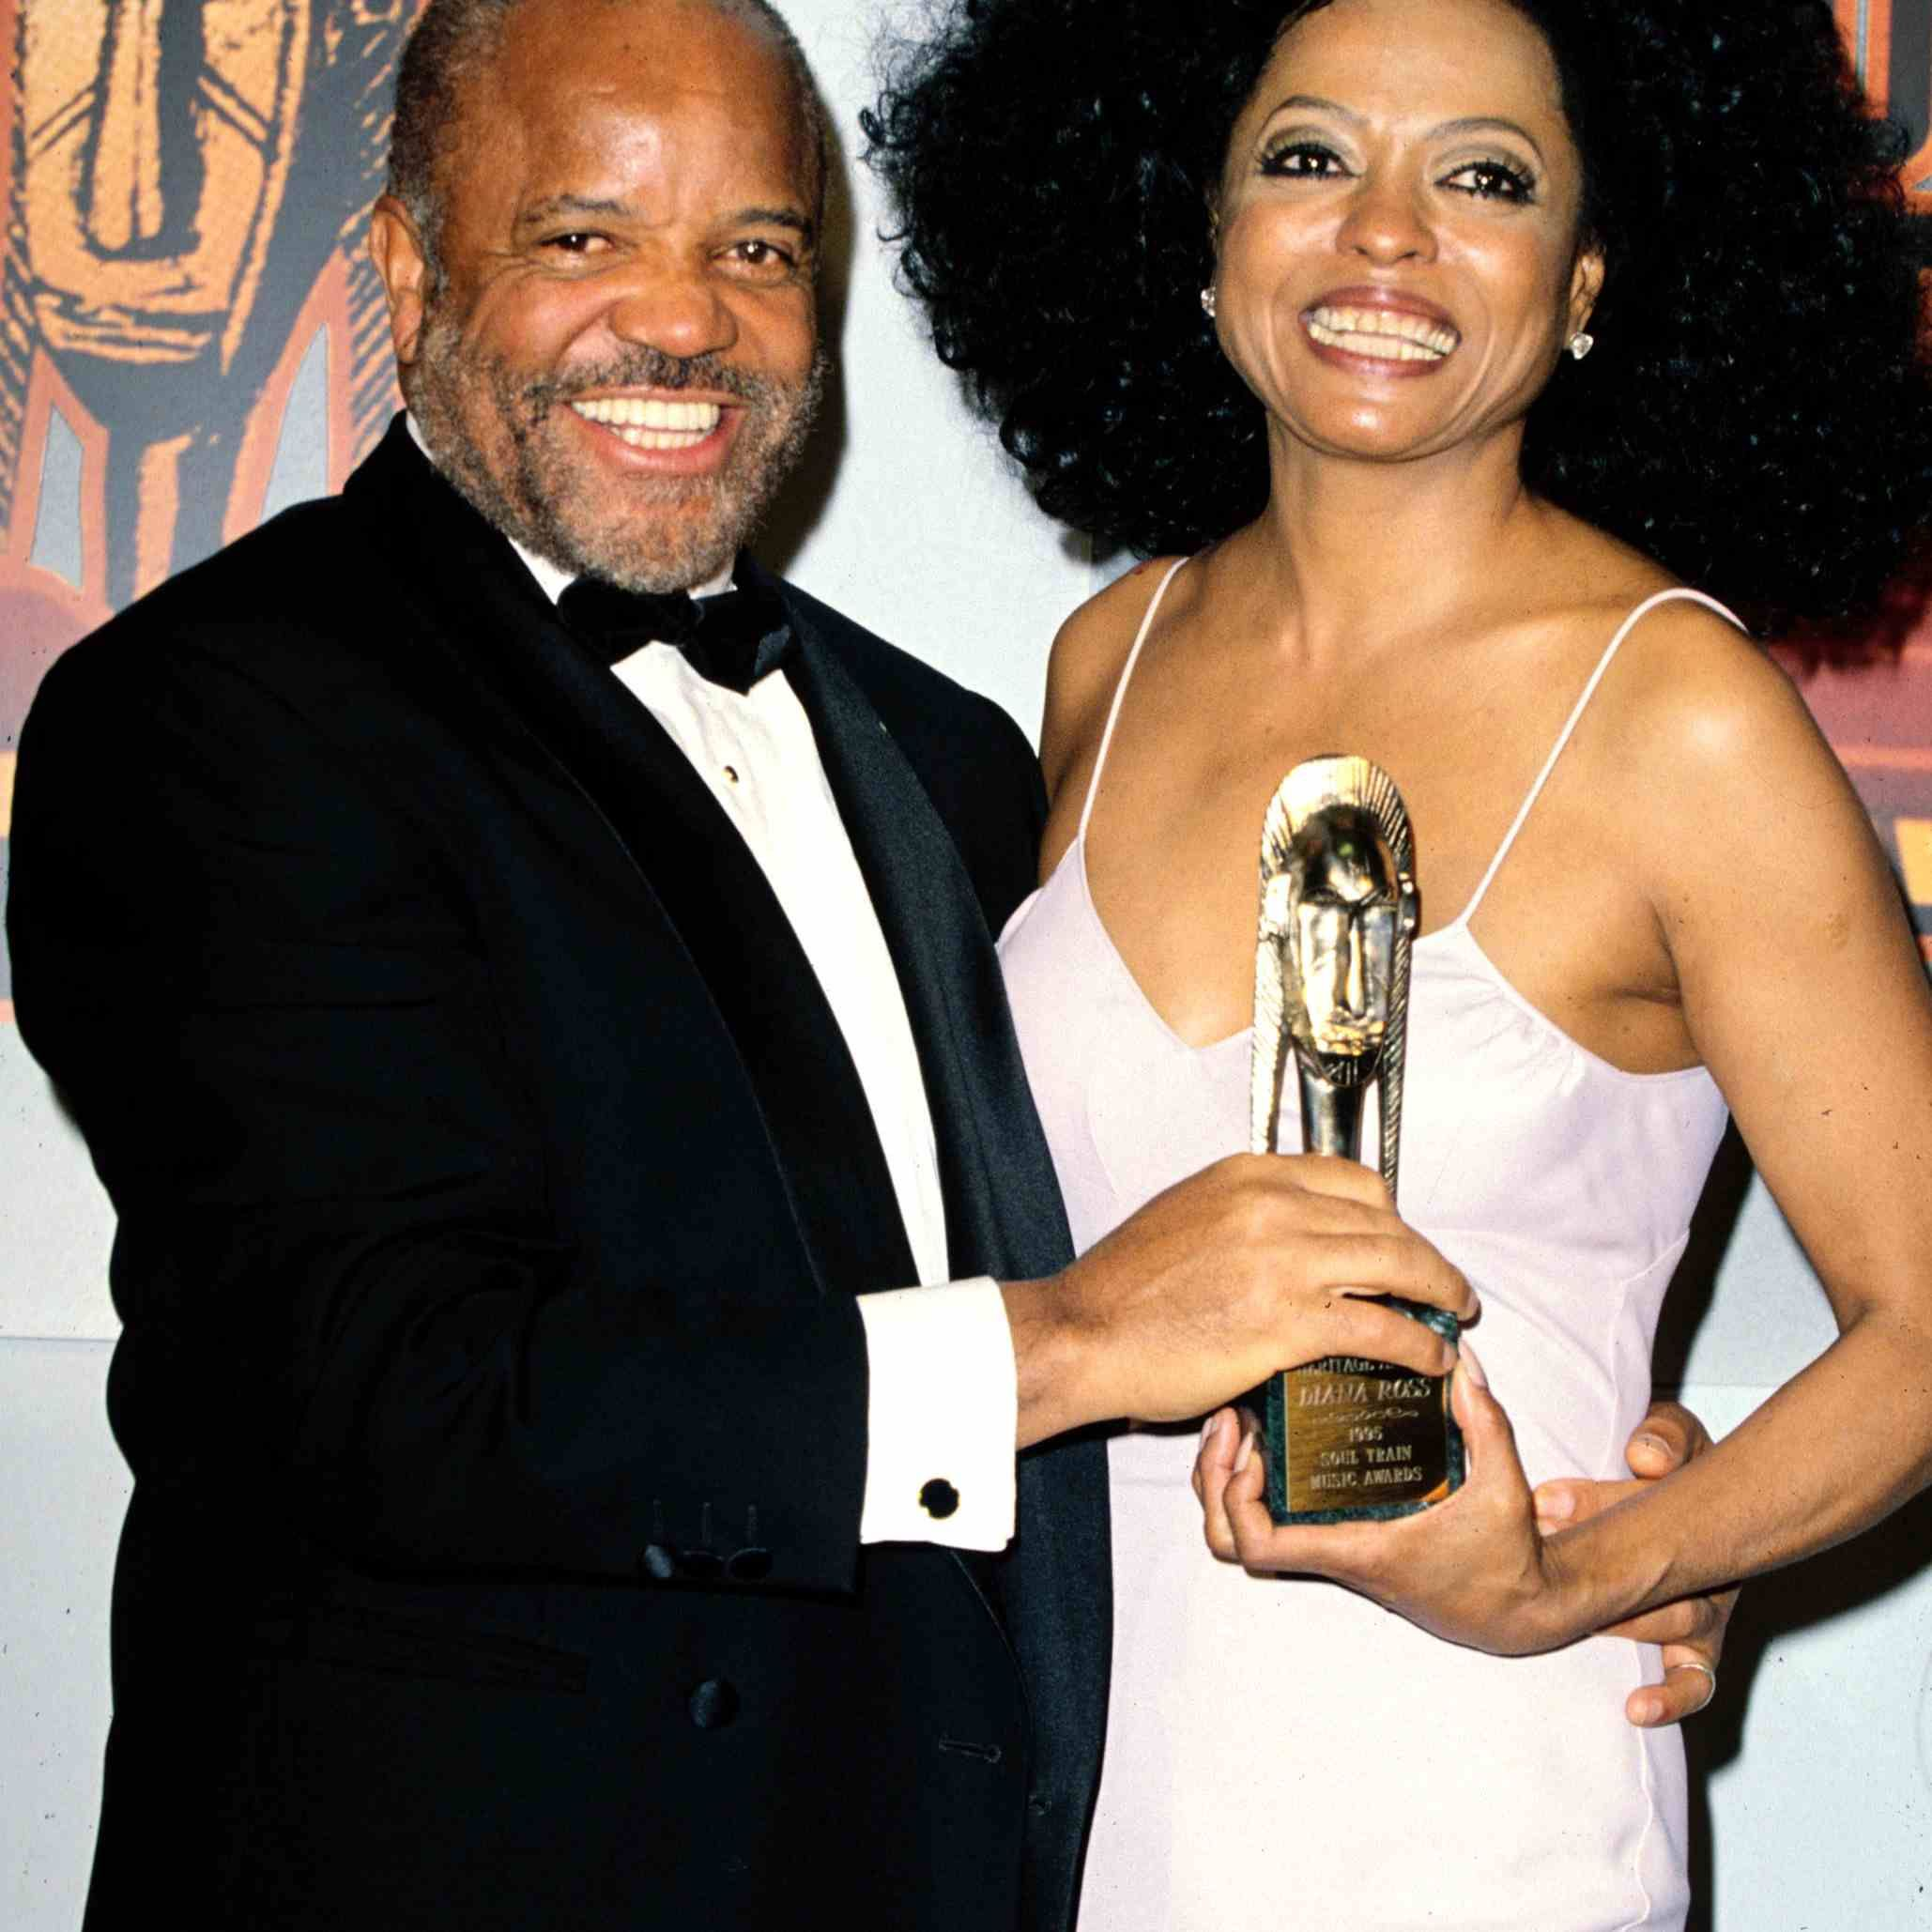 Pin by Danny Gavern on Summer Diana ross, Train music, Diana